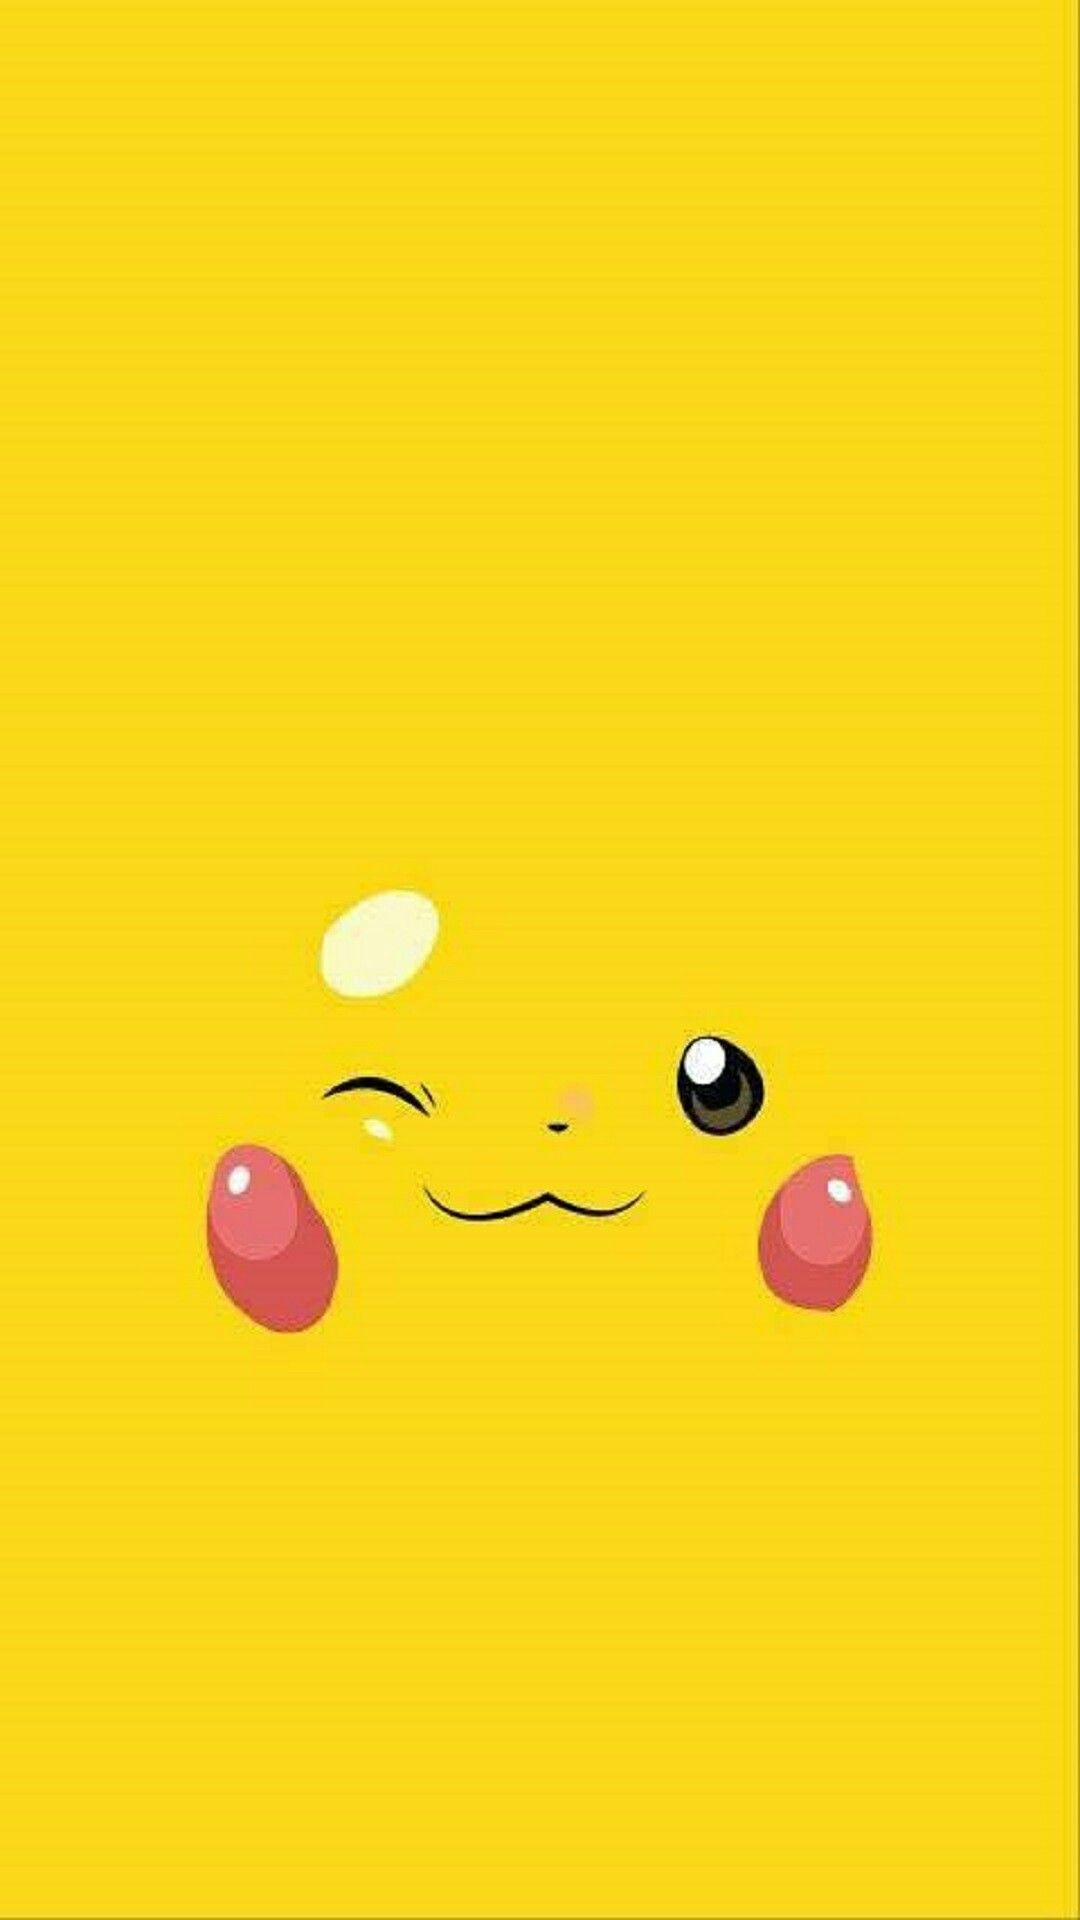 Wallpaper Pokemon Backgrounds Iphone Wallpapers Cute